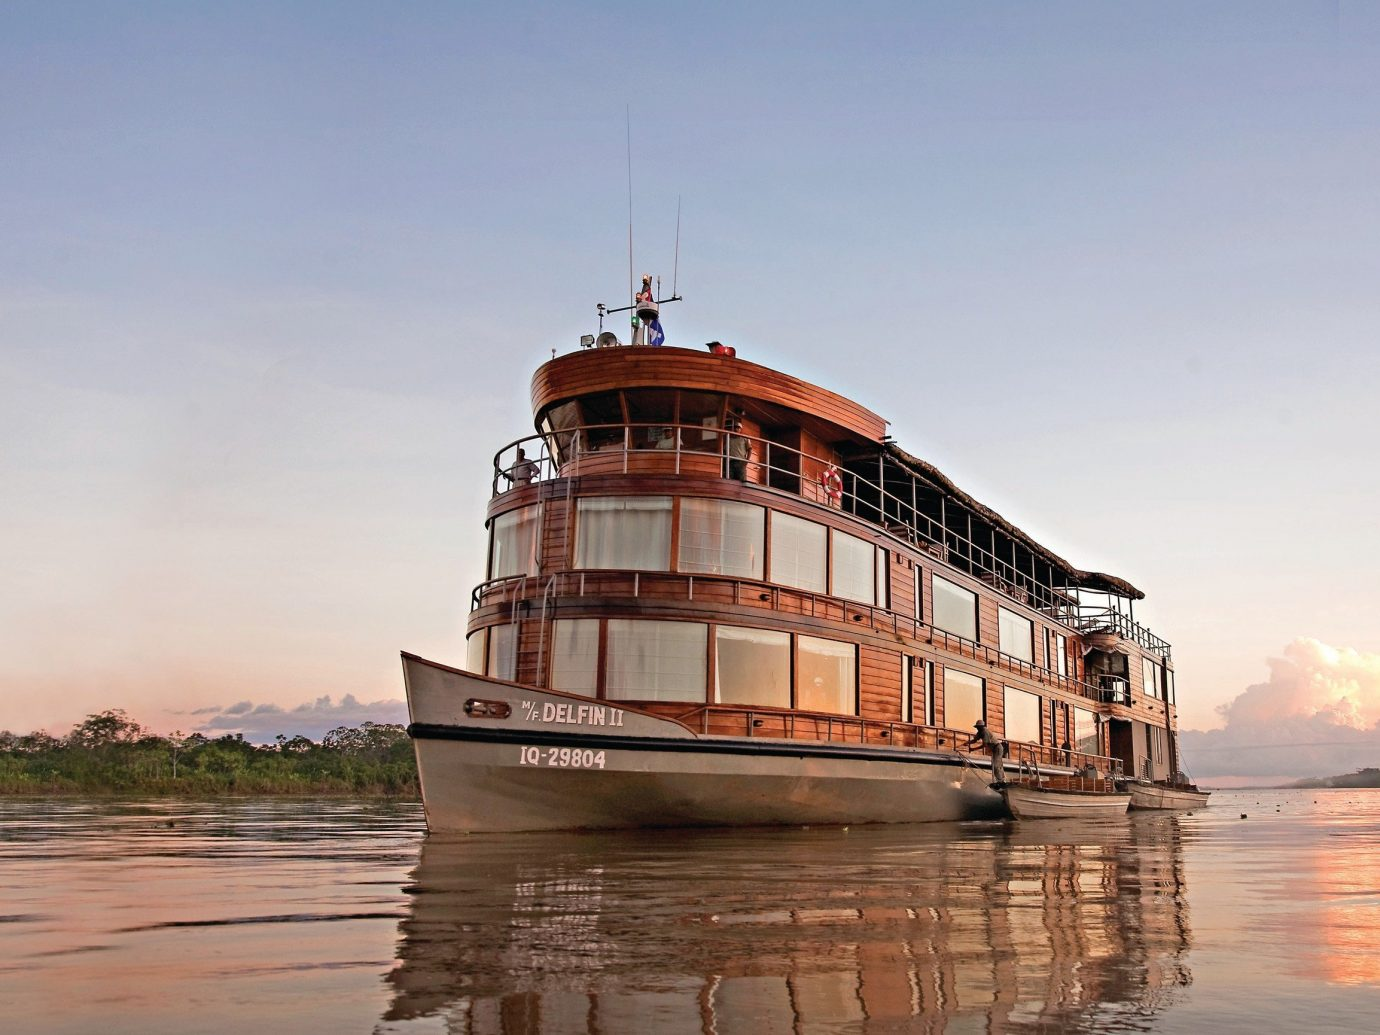 Trip Ideas water outdoor sky Boat vehicle Sea River watercraft reflection ship waterway tower ferry Coast Harbor passenger ship bay traveling